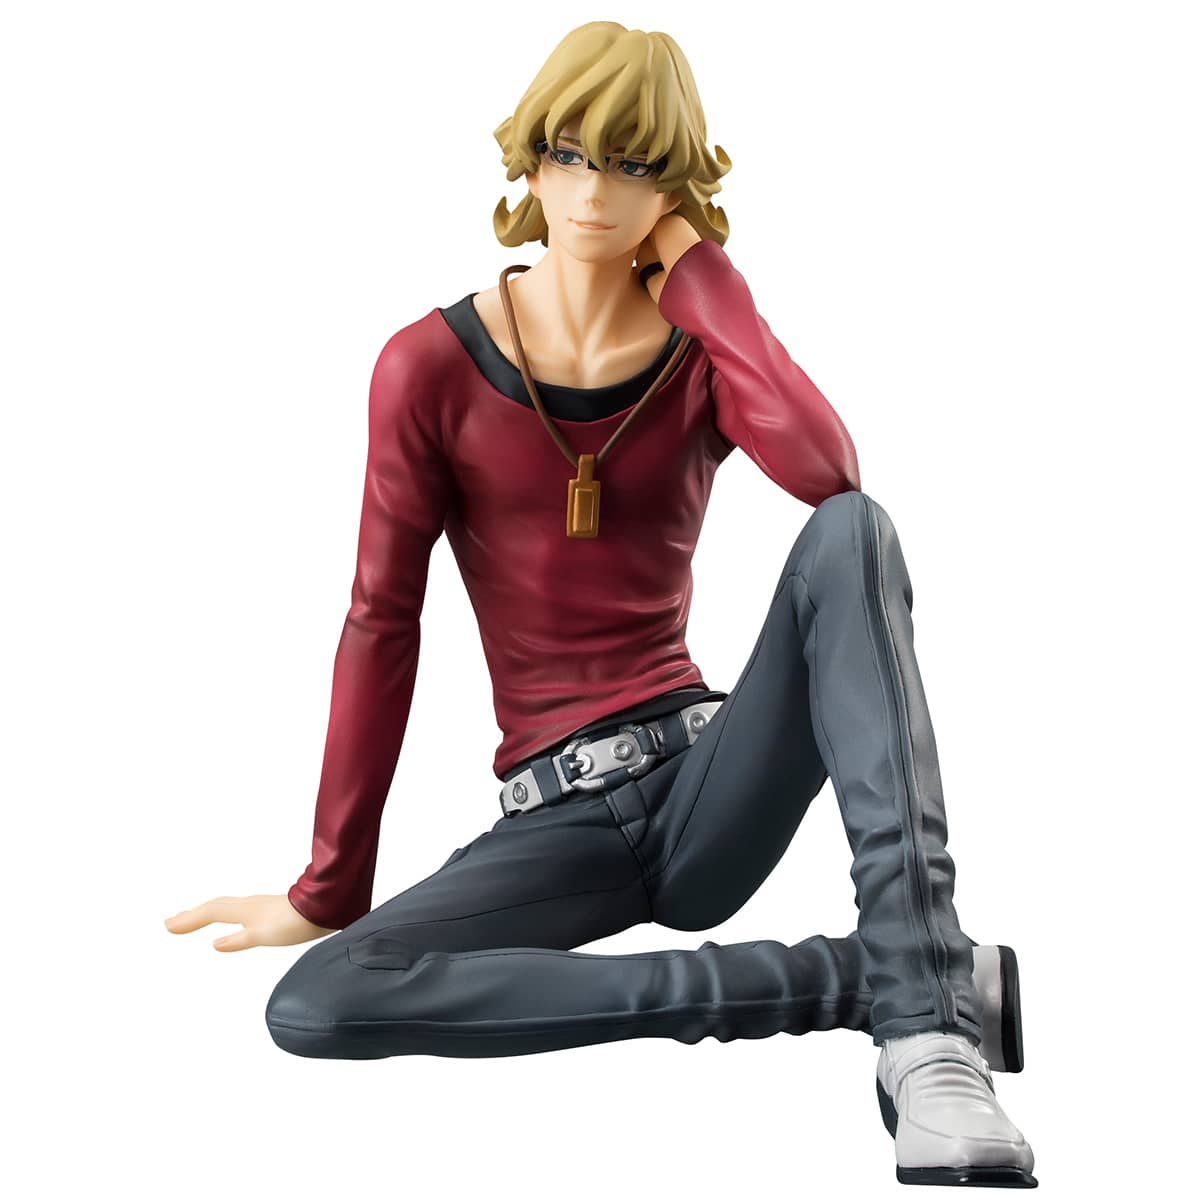 BARNABY BROOKS JR  FIGURA TIGER & BUNNY THE RISING PALMATE EXTRA SERIES